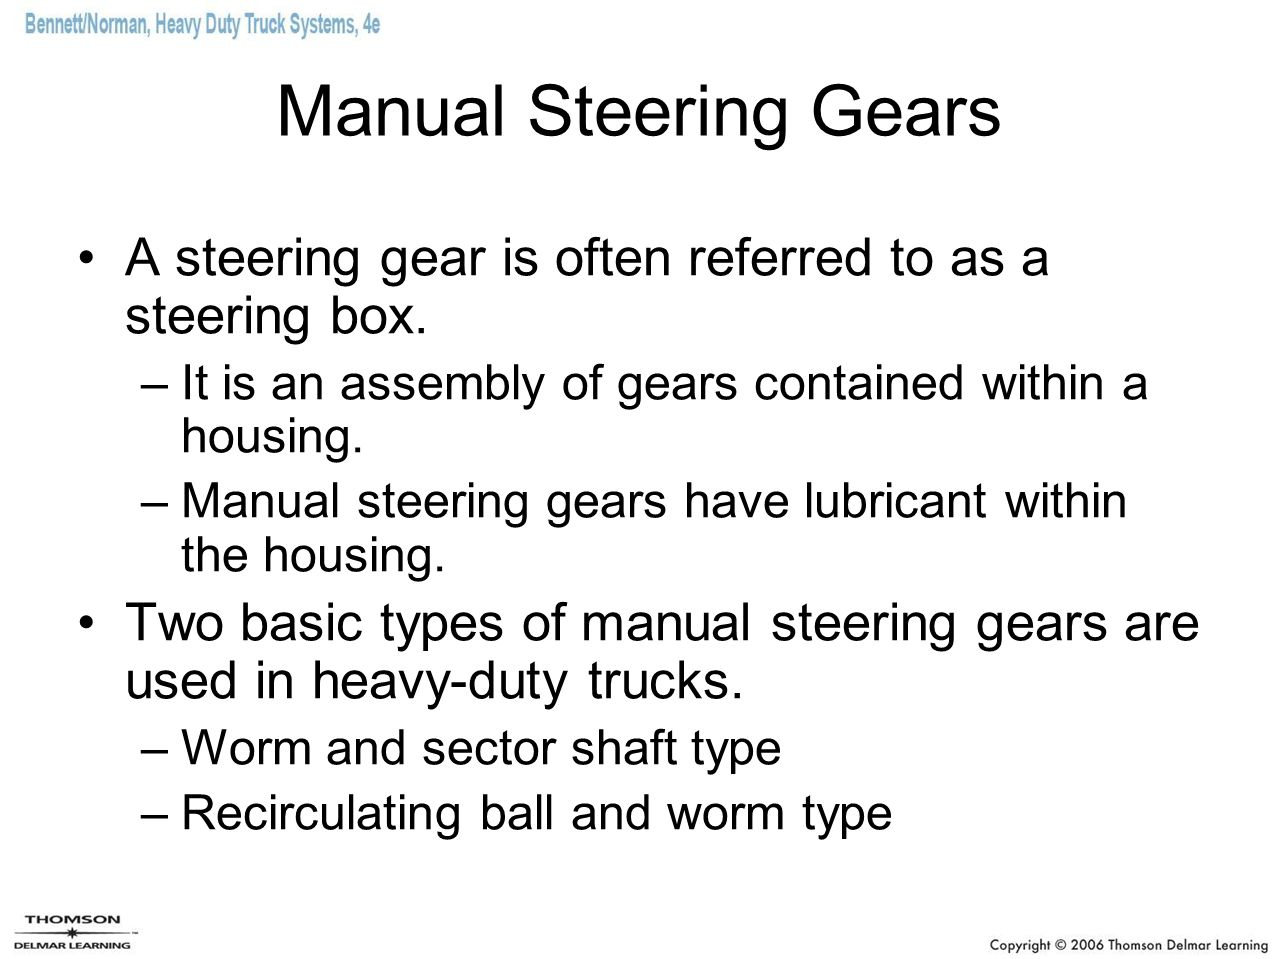 Manual Steering Gears A steering gear is often referred to as a steering box. It is an assembly of gears contained within a housing.